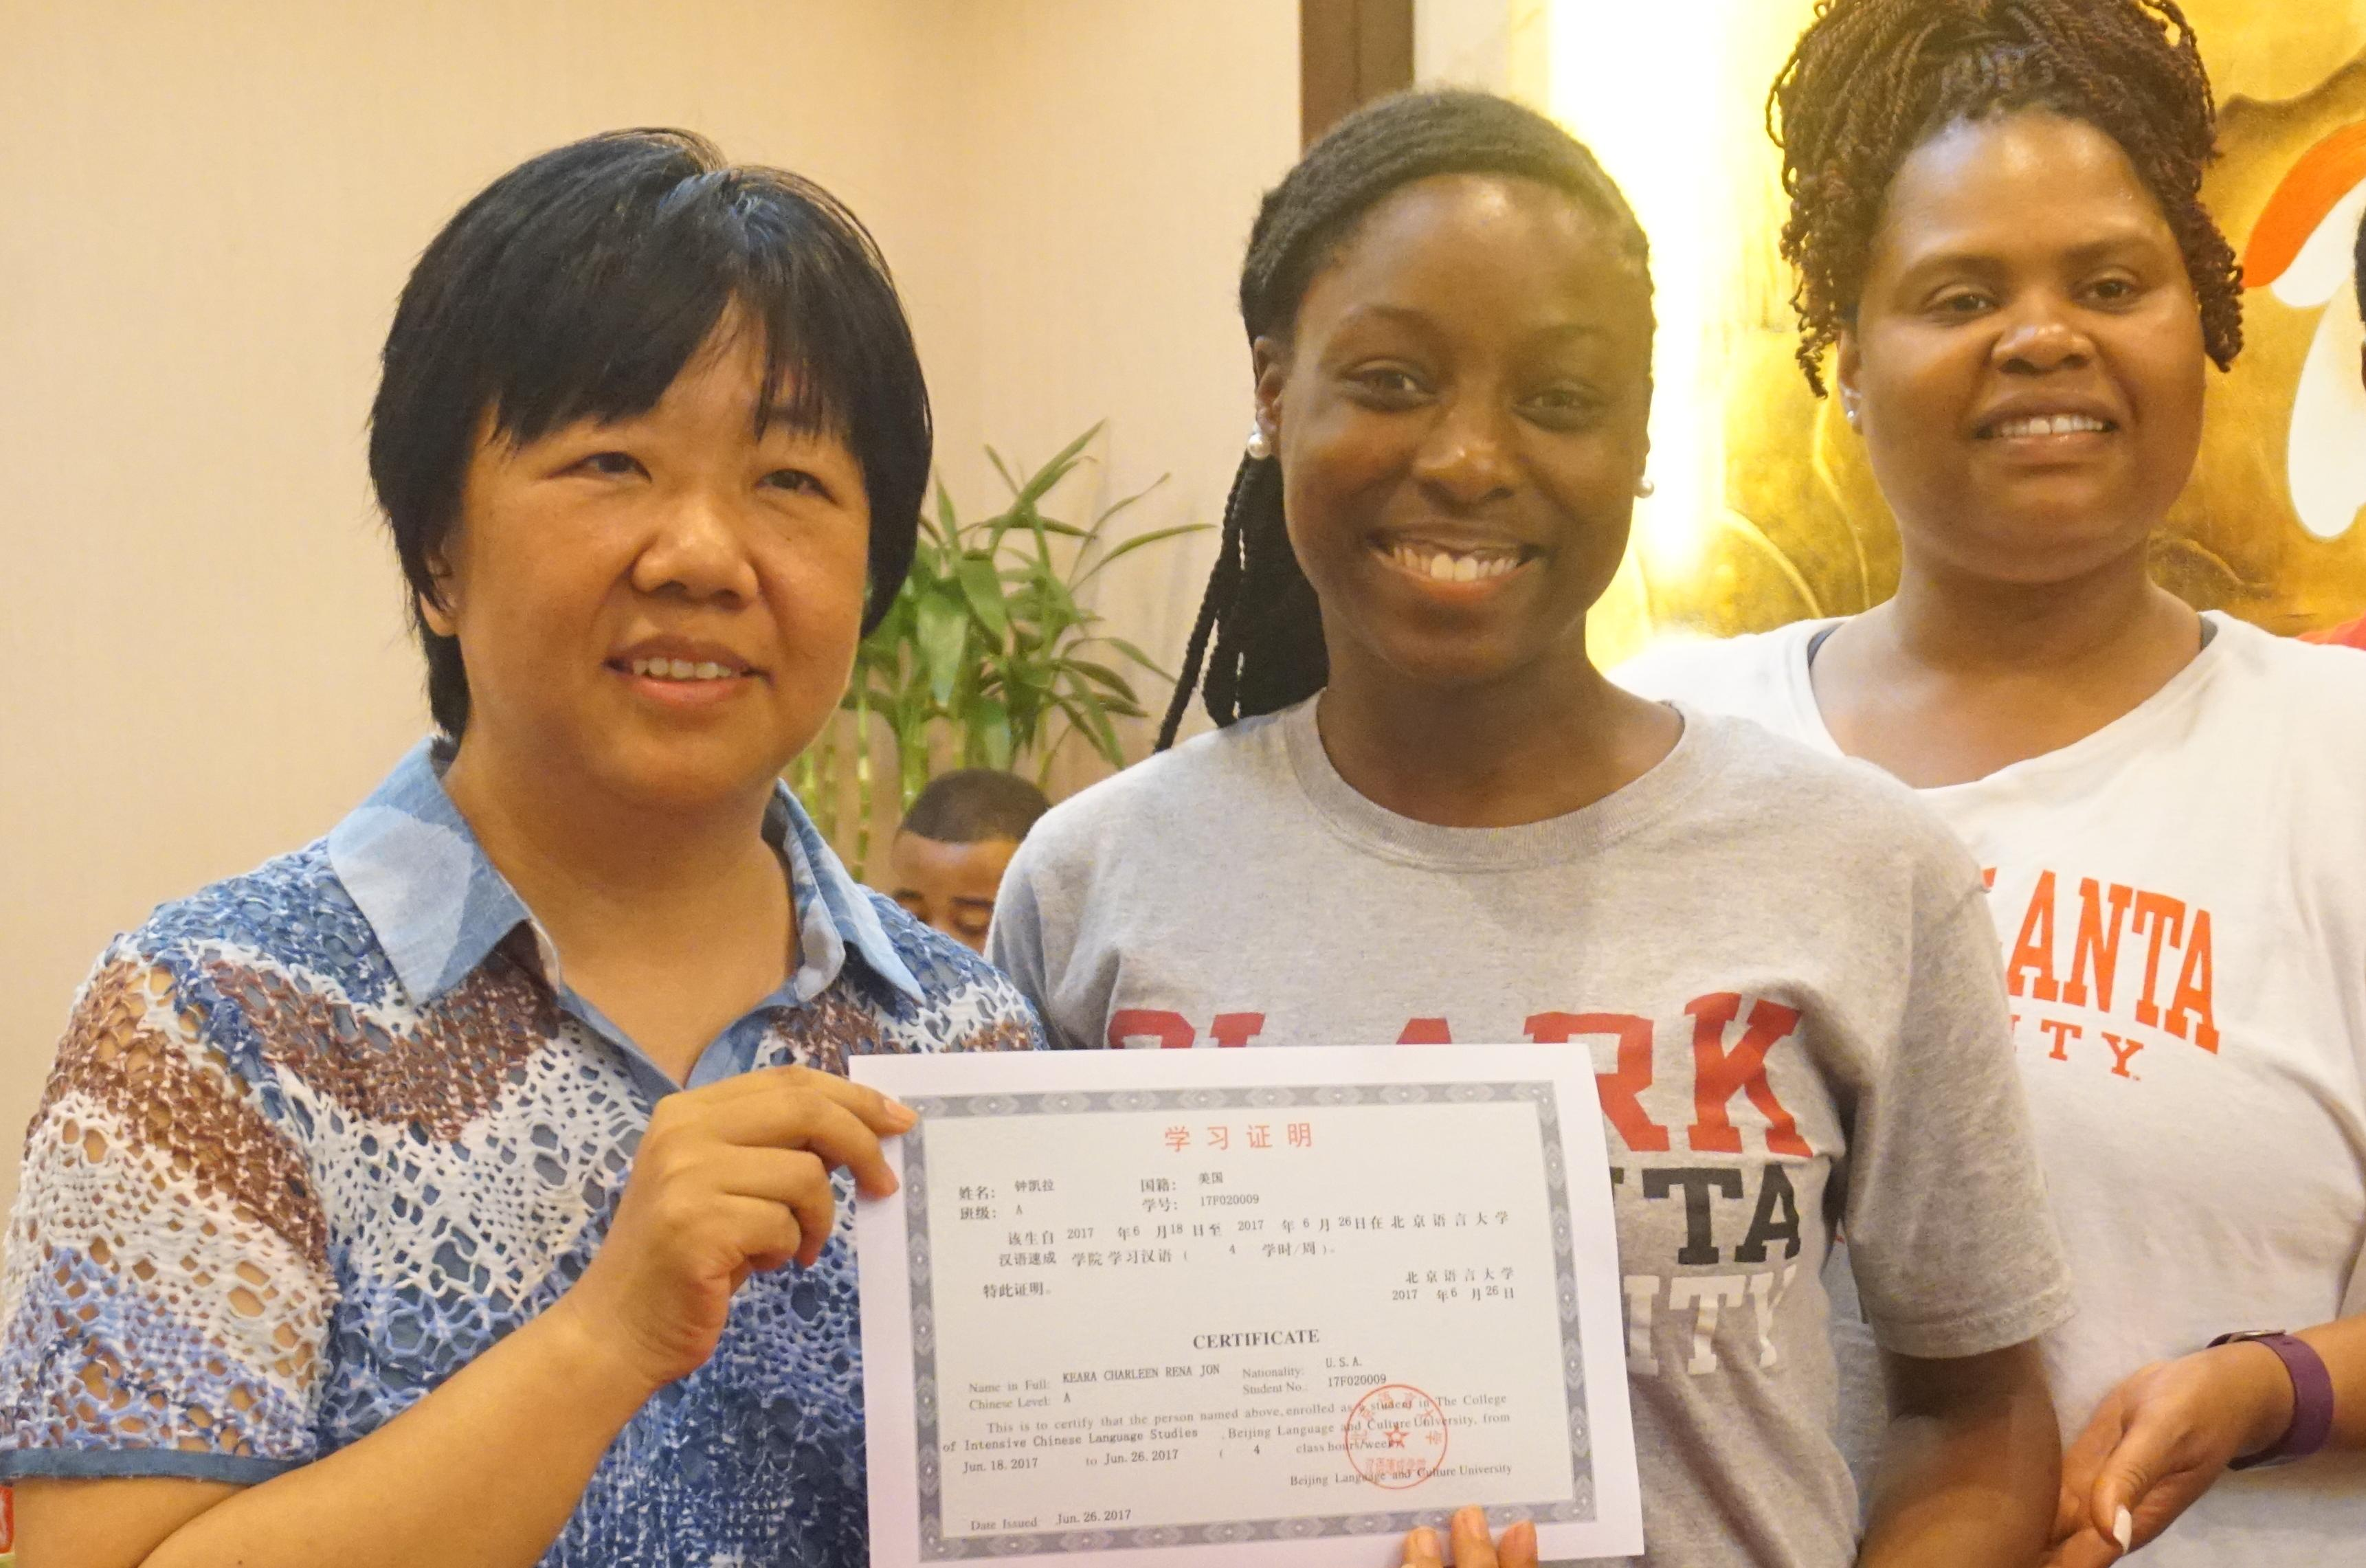 [CropImg]Keara Jones is a student from Clark Atlanta Univerisity. She participated in the China Exchange Program sponsored by CUSEF in June 2017 (1).JPG